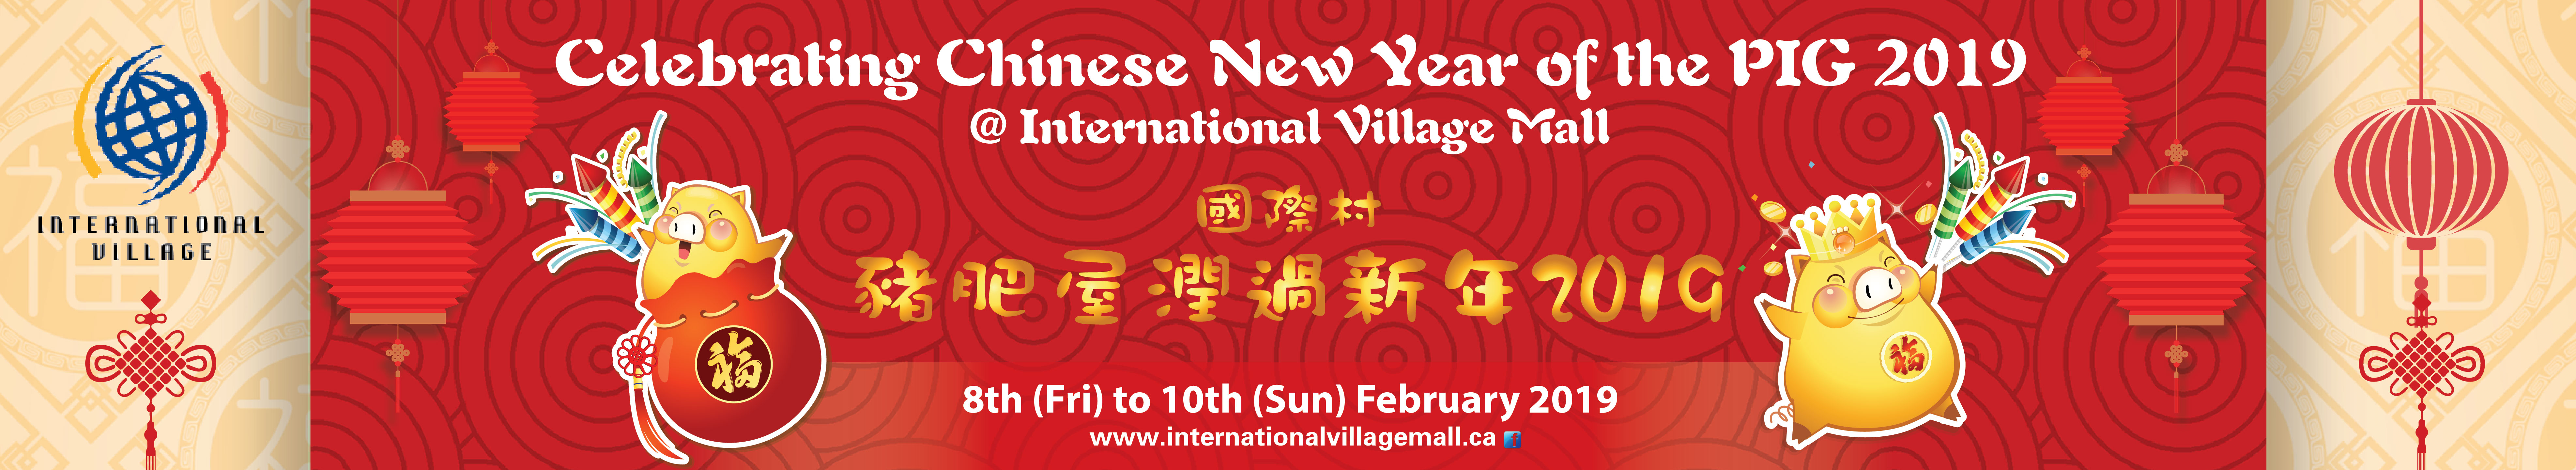 Celebrating Year of the Pig 2019 國際村豬肥屋潤過新年 - Vancouver